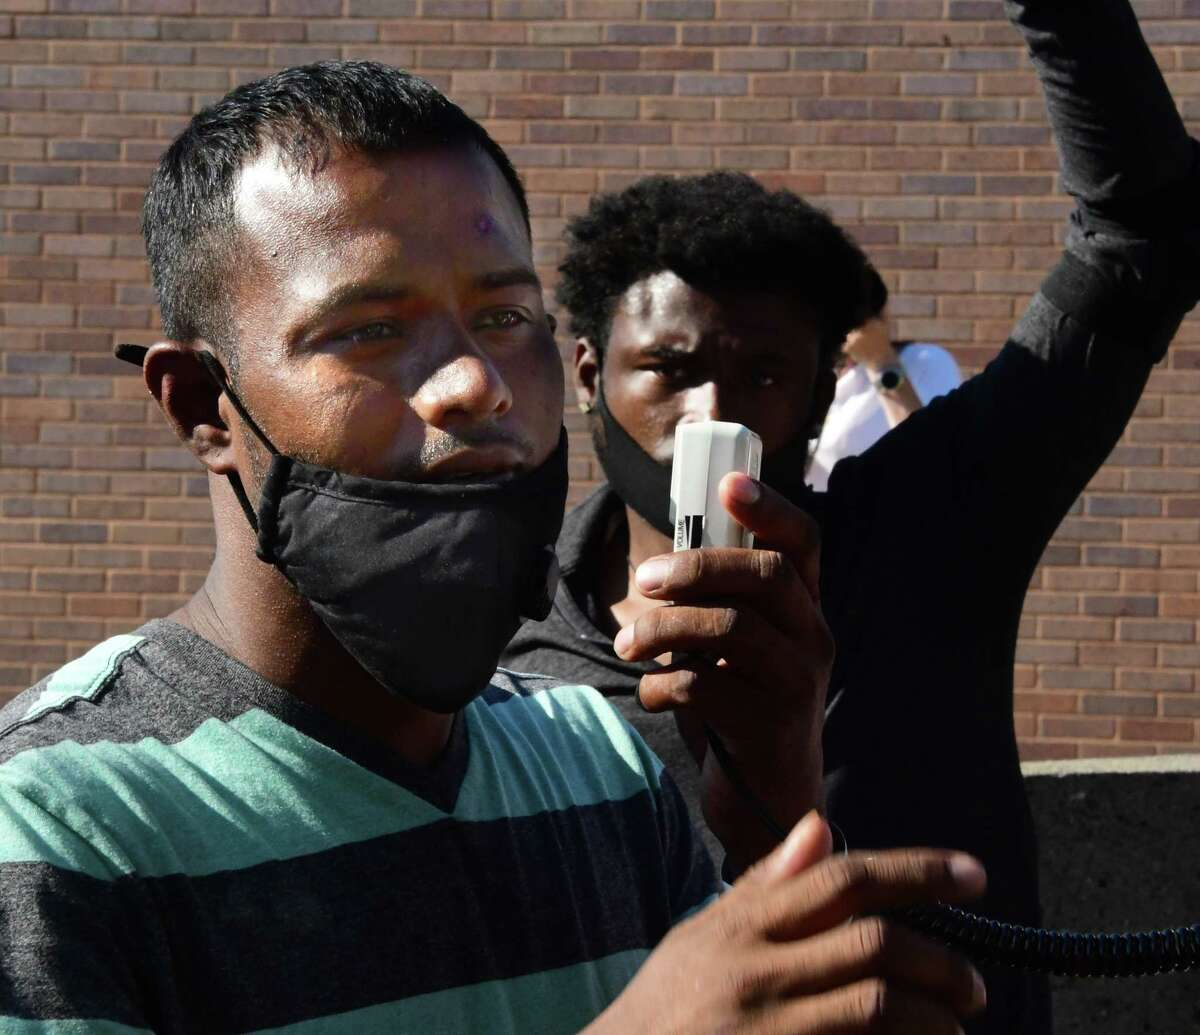 Yugeshwar Gaindarpersaud speaks with a megaphone as protesters express their anger outside Schenectady Police Headquarters after a police officer was video-recorded allegedly kneeling on his neck while trying to apprehend him on Brandywine Avenue on Monday, July 6, 2020 in Schenectady, N.Y. (Lori Van Buren/Times Union)